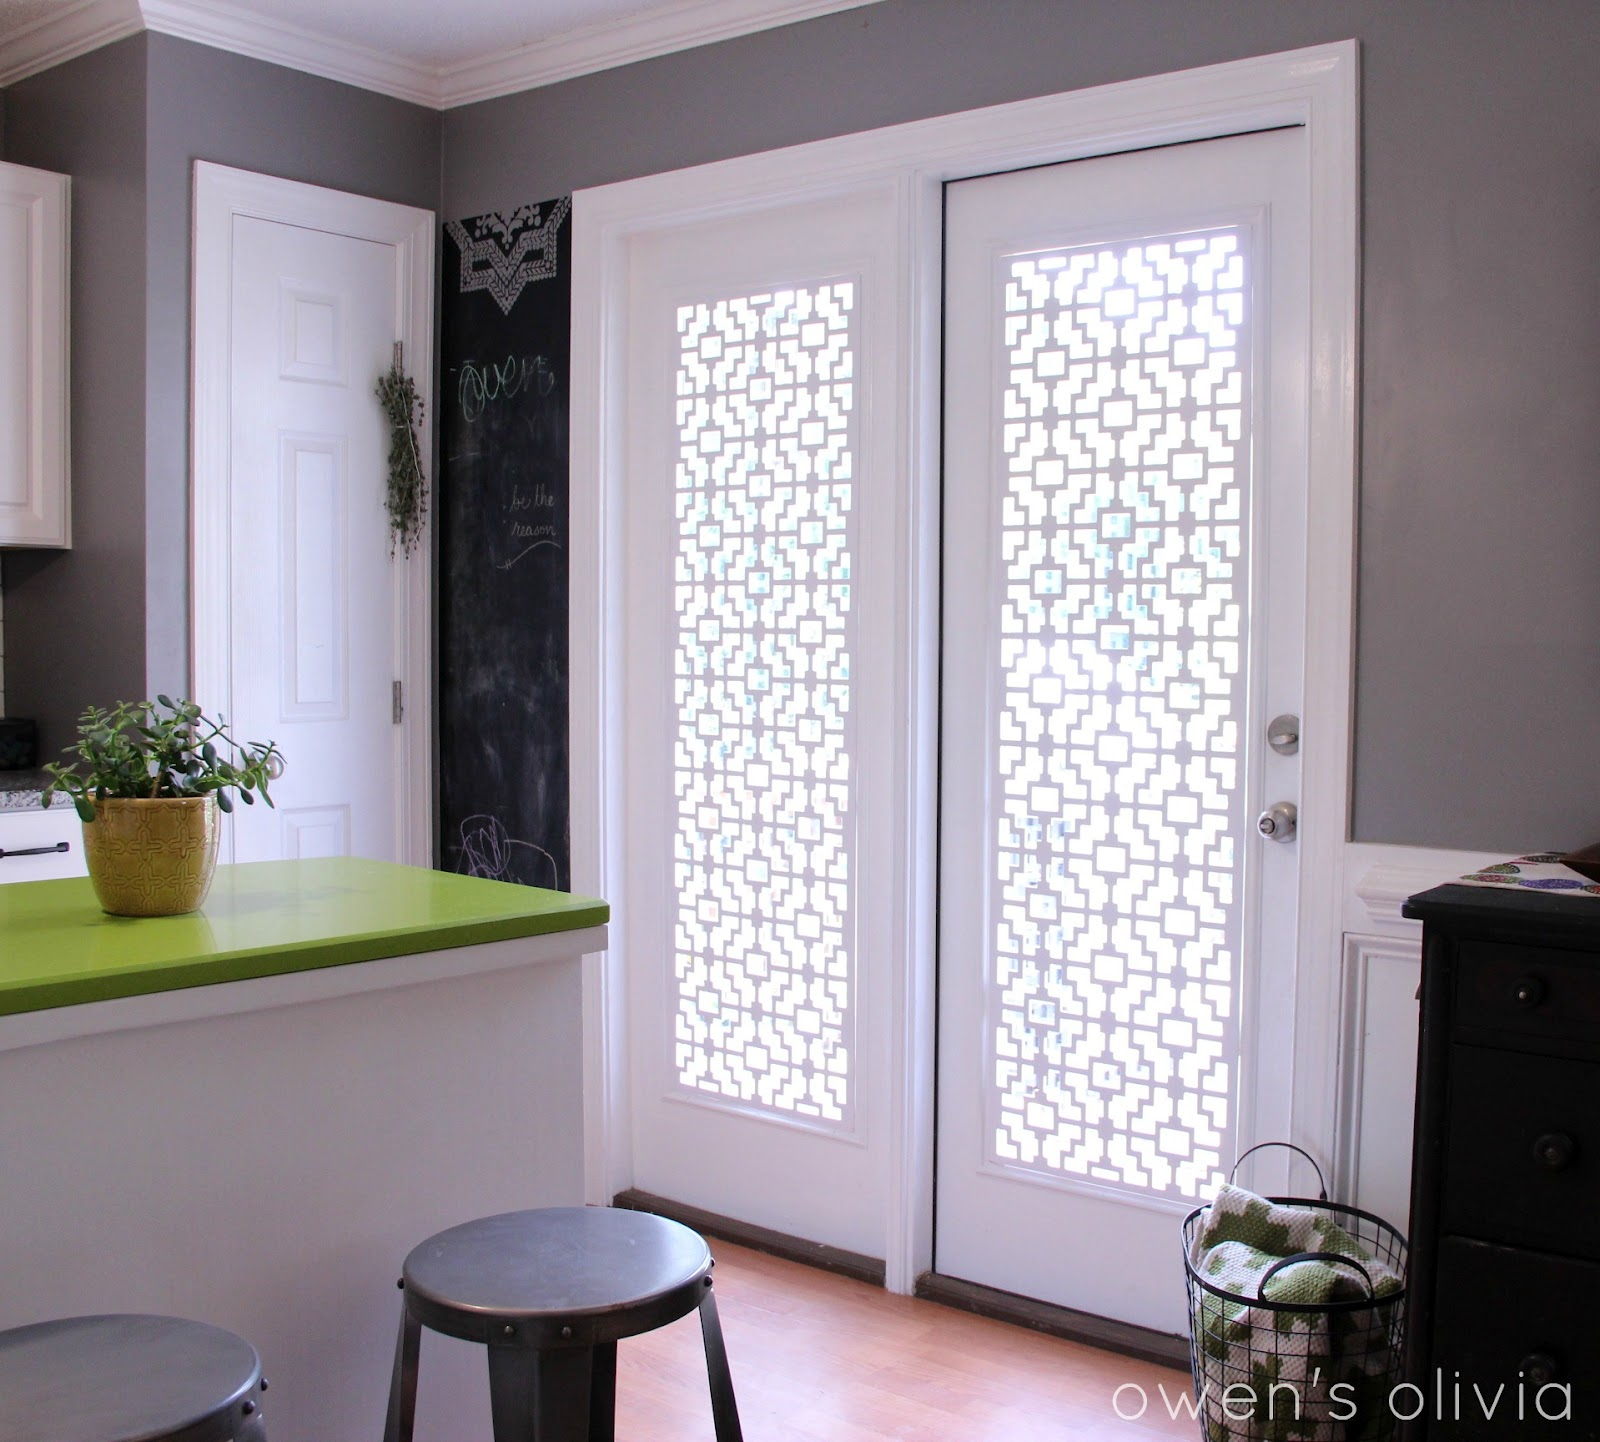 Luxury Owenu0027s Olivia: Custom Window Treatments Using PVC. I u003c3 this for my window treatments for french doors to a patio